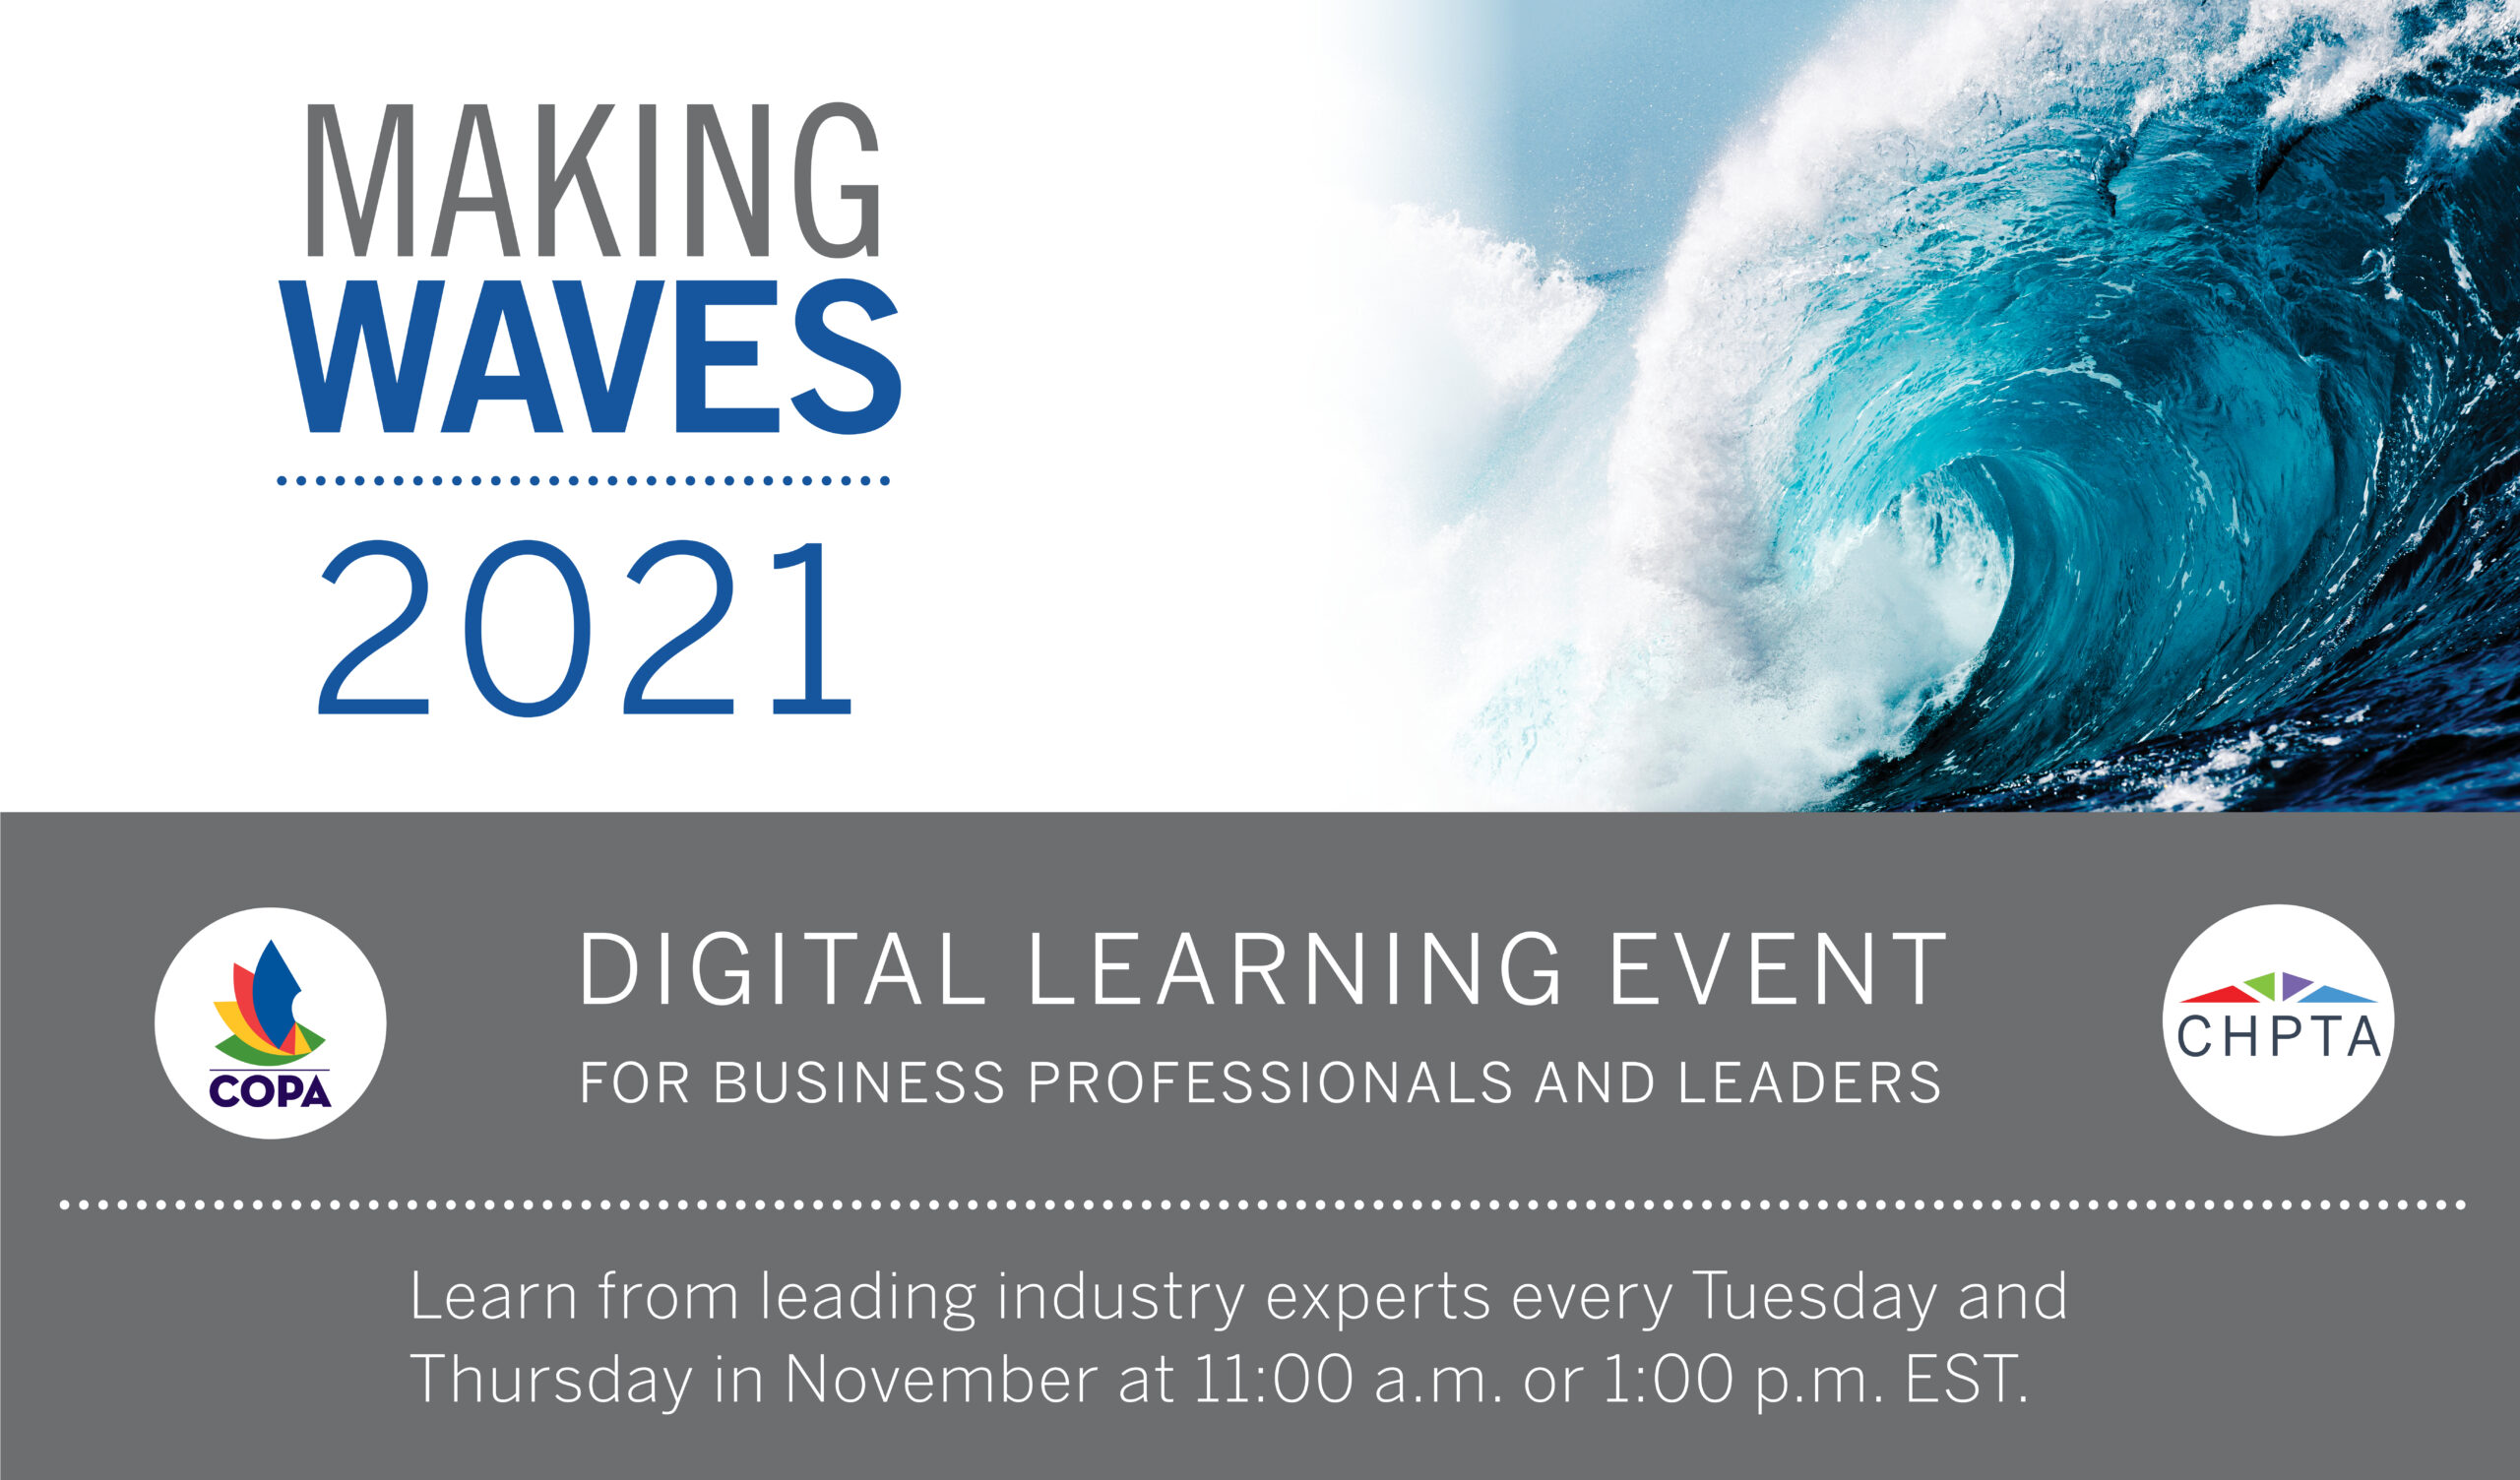 Janice Stein to Open Making Waves 2021 With Keynote